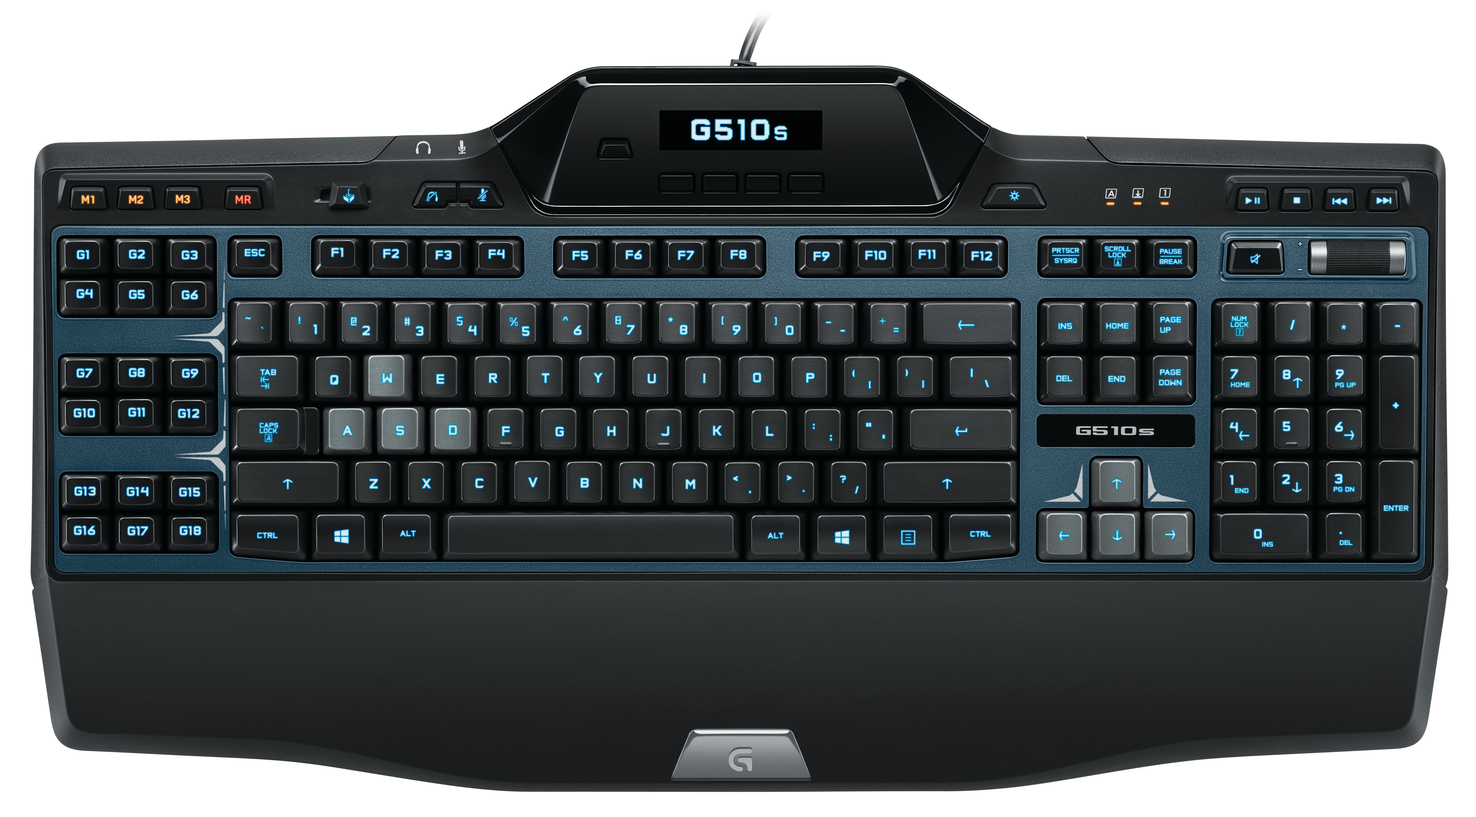 Clavier gaming filaire Logitech G510s